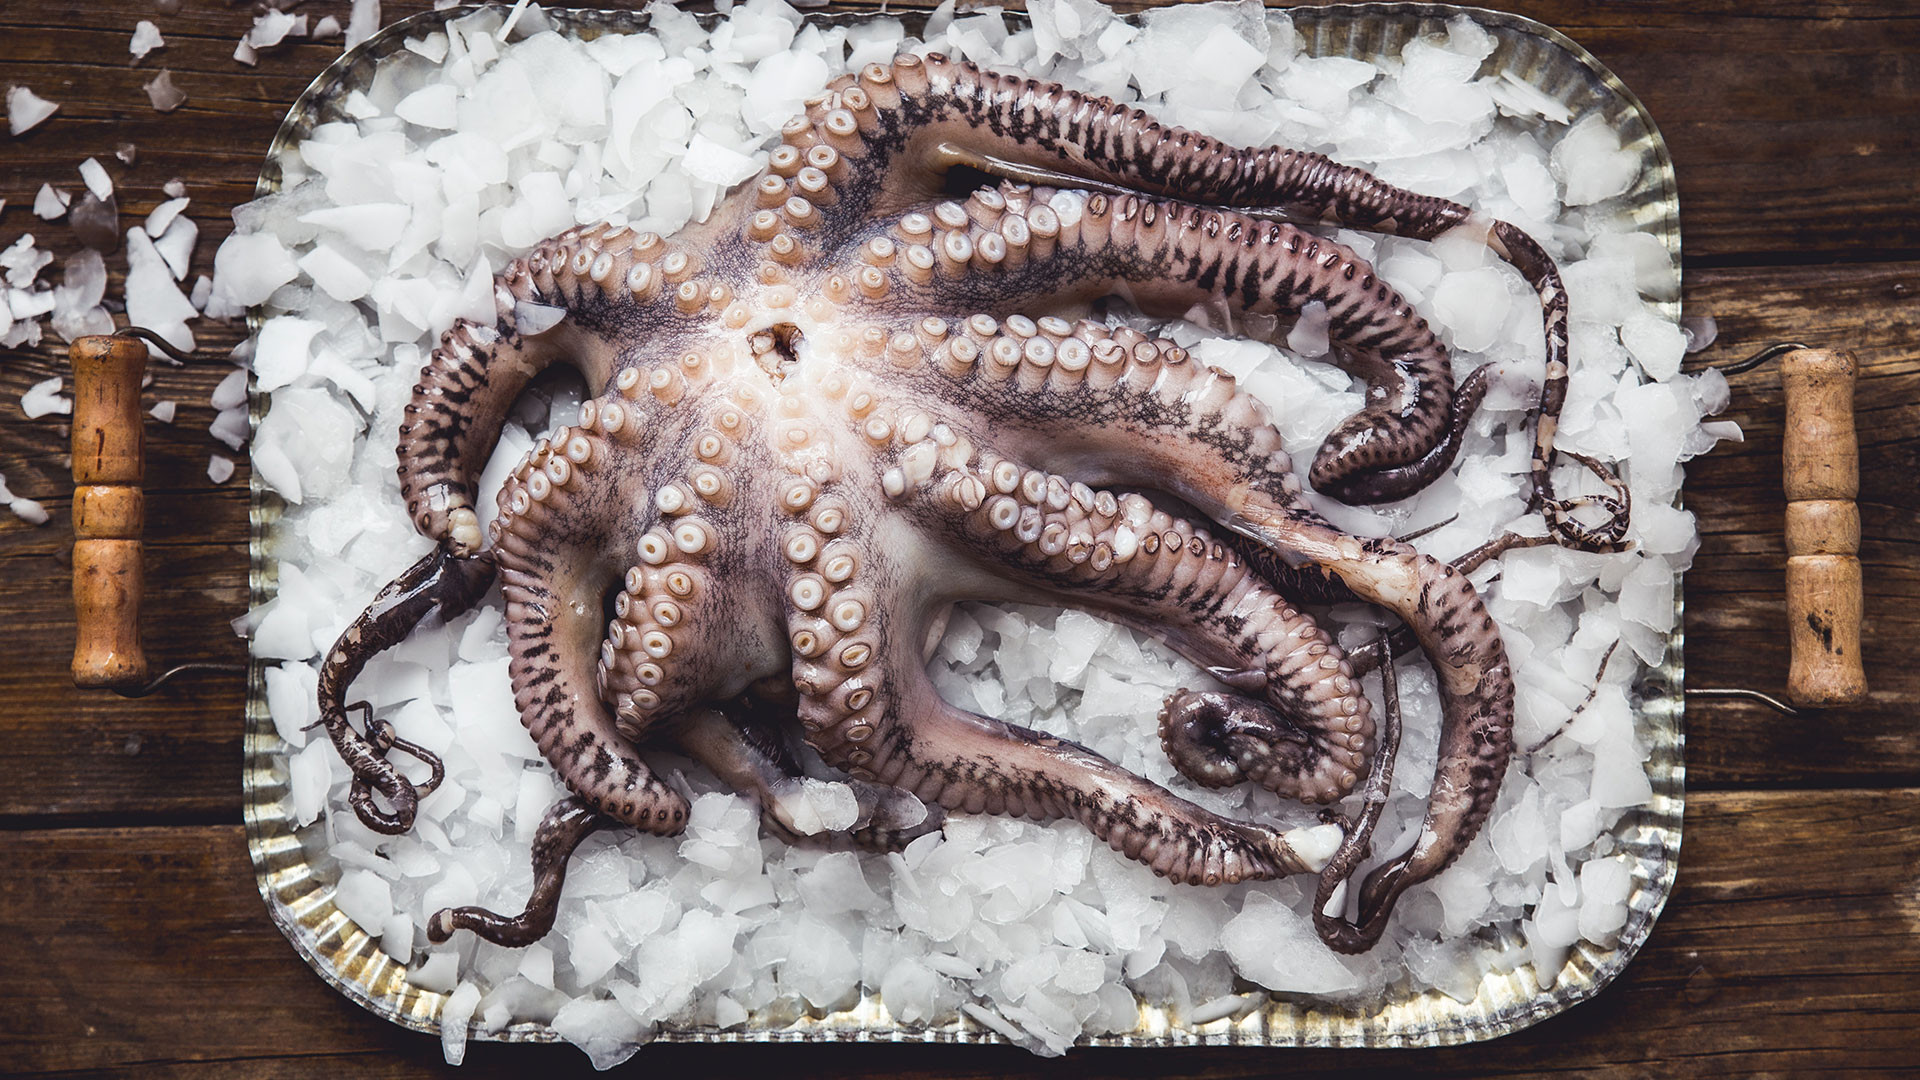 Pink Lady Food Photographer of the Year Cream of the Crop, Petra Novotna, Octopus on Ice